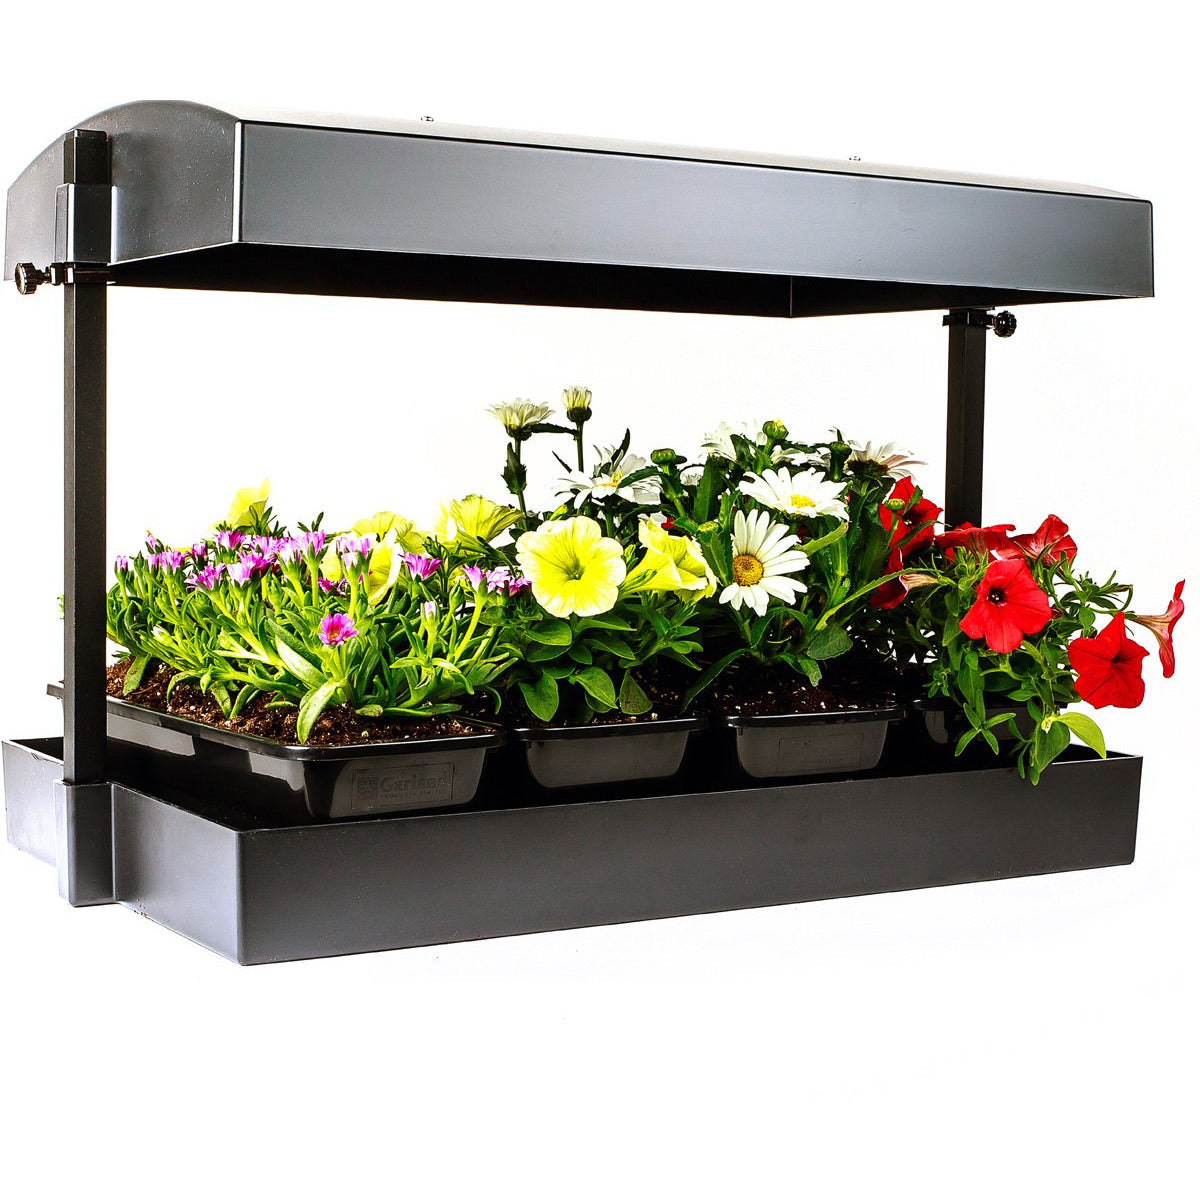 Sunblaster T5 Grow Light Garden, Black